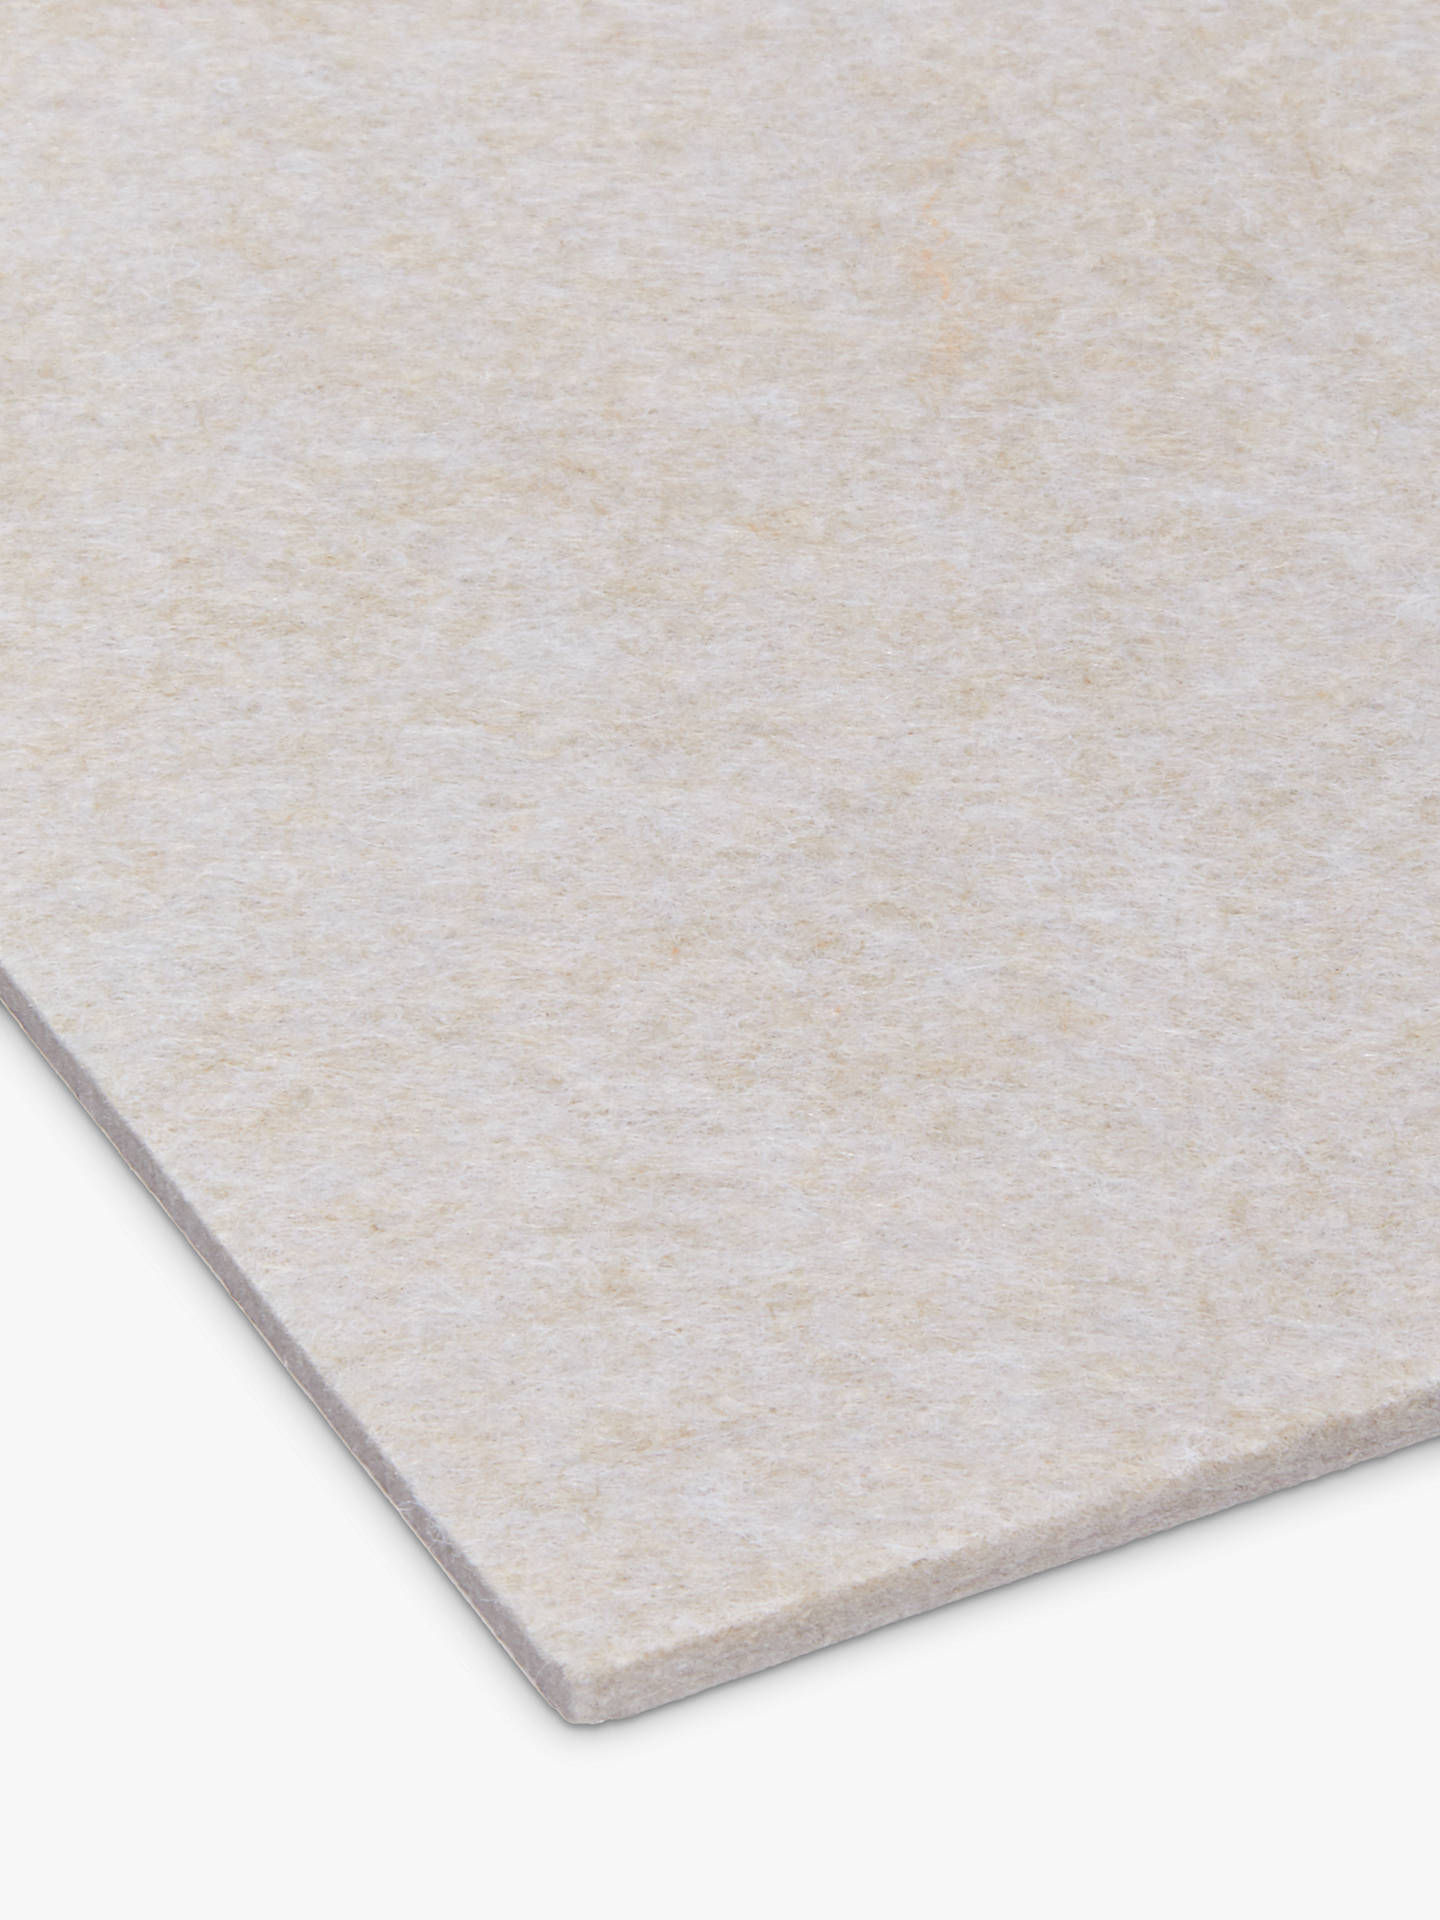 Buy Russel Adhesive Floor Protector Felt Pads, Pack of 4 Online at johnlewis.com